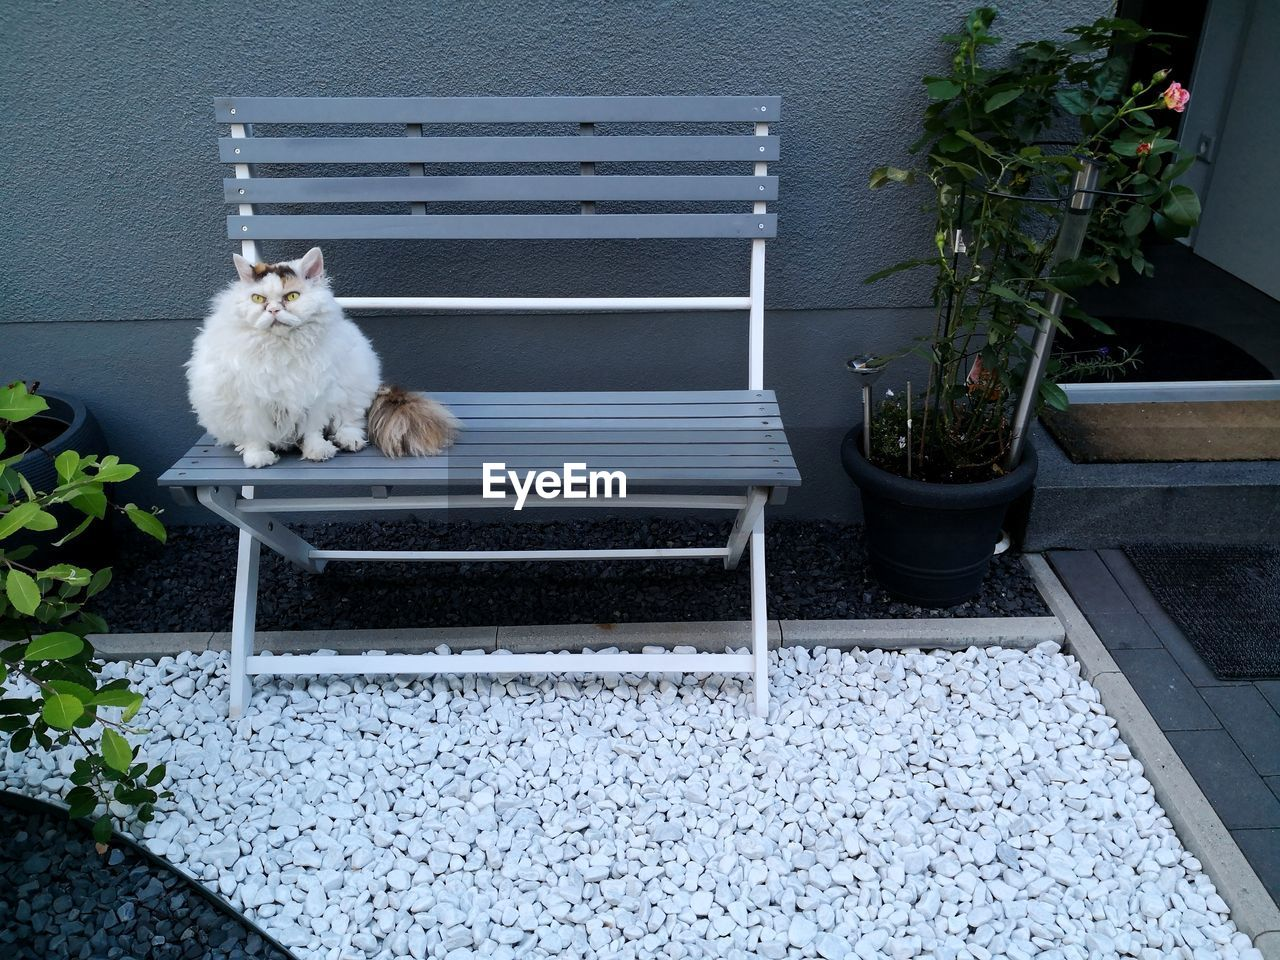 pets, domestic, mammal, animal themes, domestic animals, one animal, animal, vertebrate, cat, domestic cat, feline, dog, no people, canine, plant, day, potted plant, relaxation, nature, white color